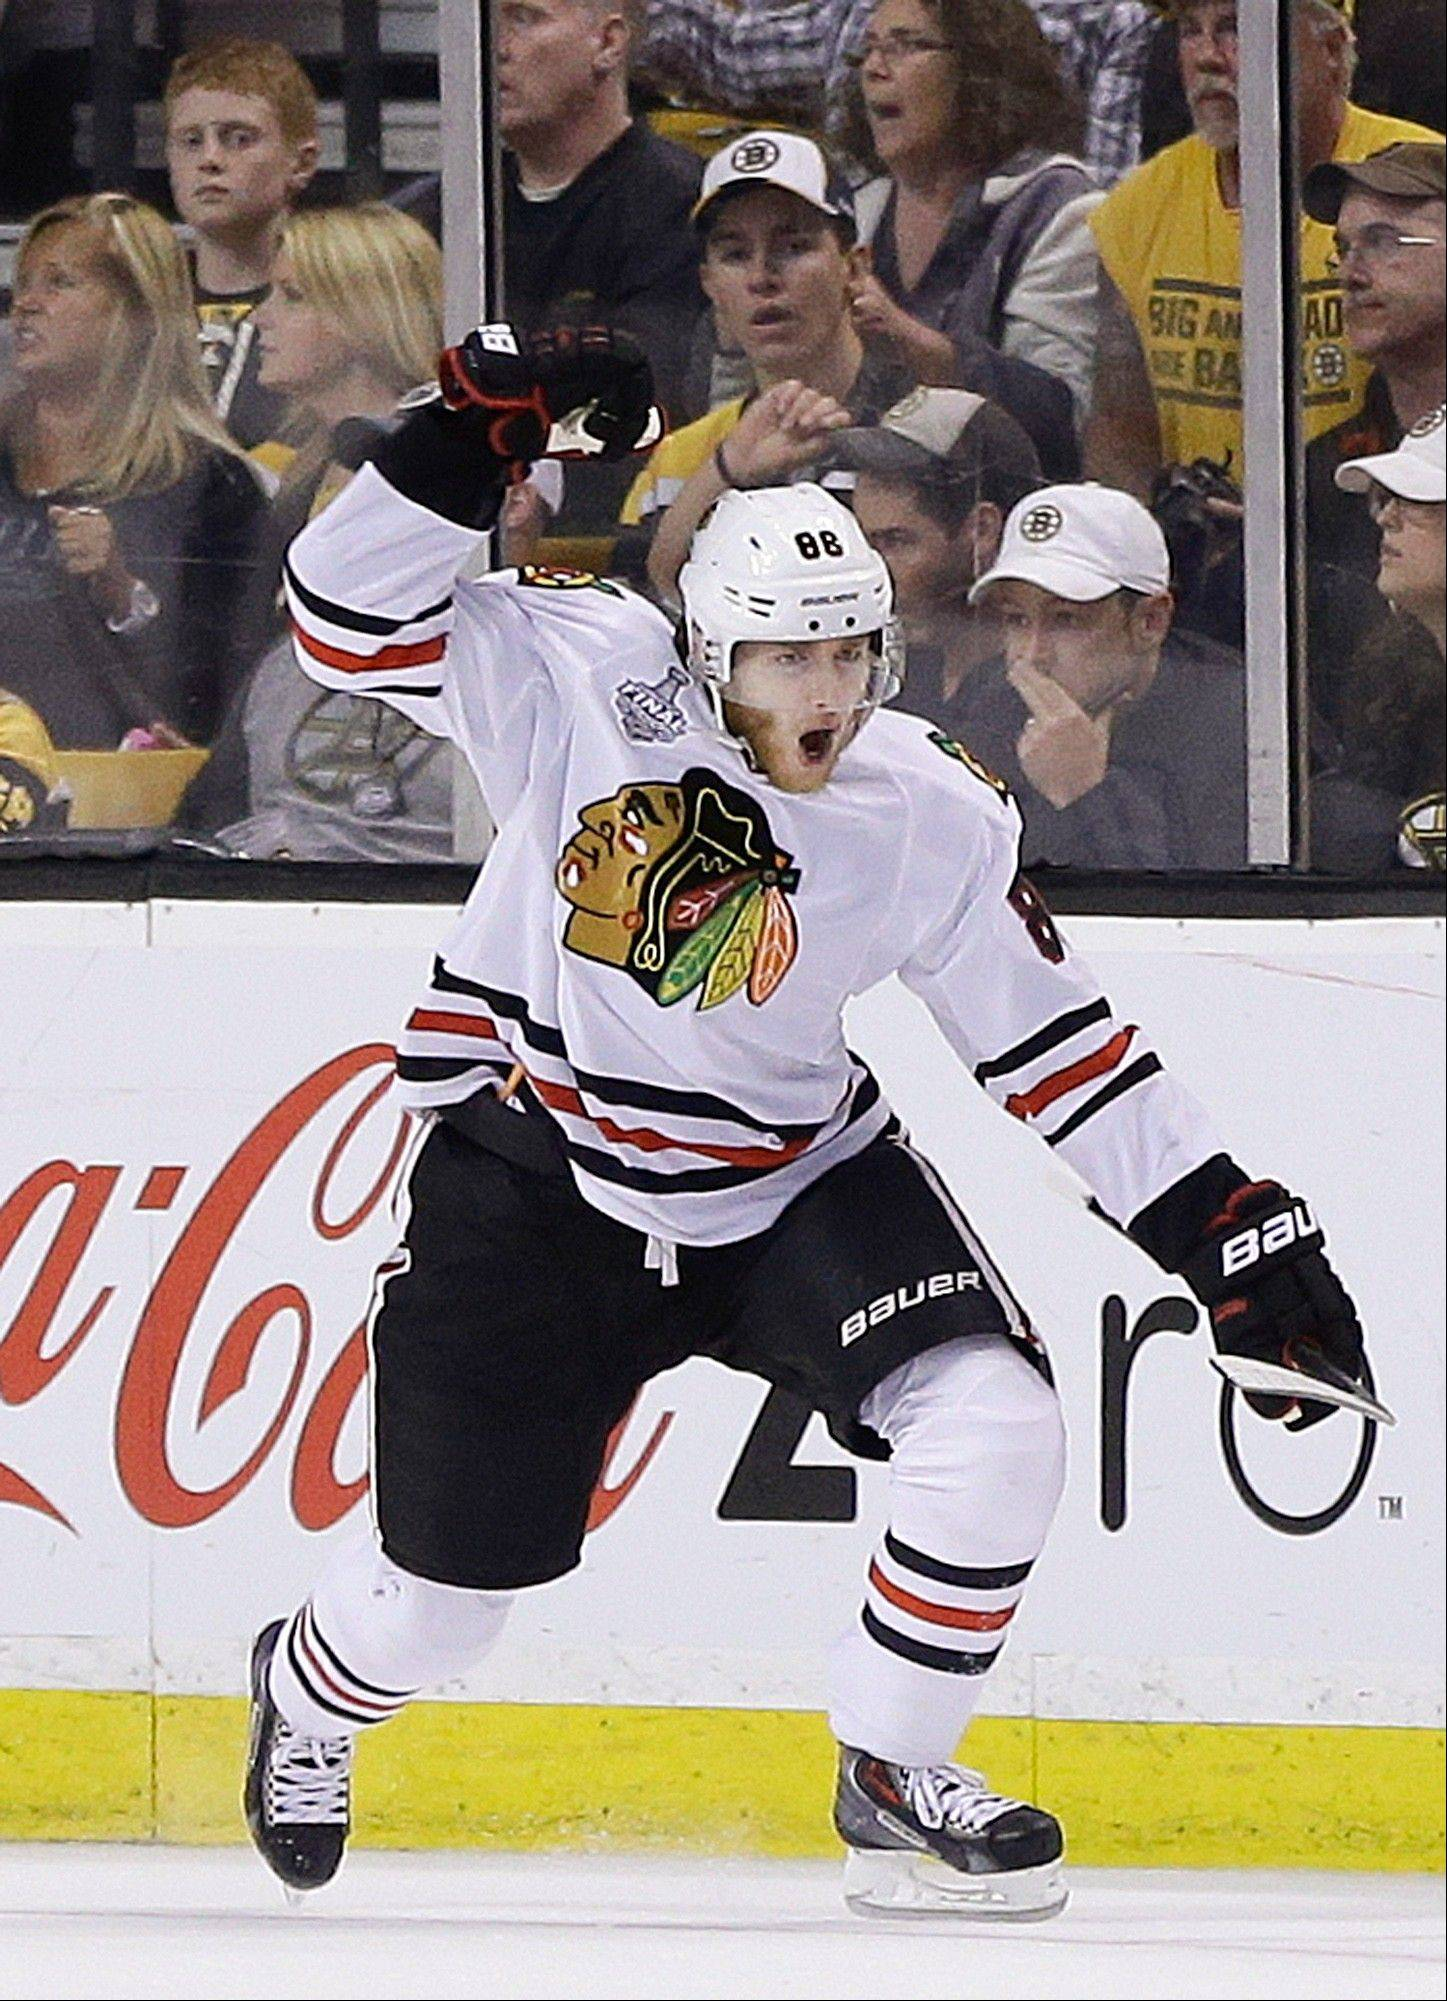 Blackhawks beat Bruins 6-5 in OT, even series